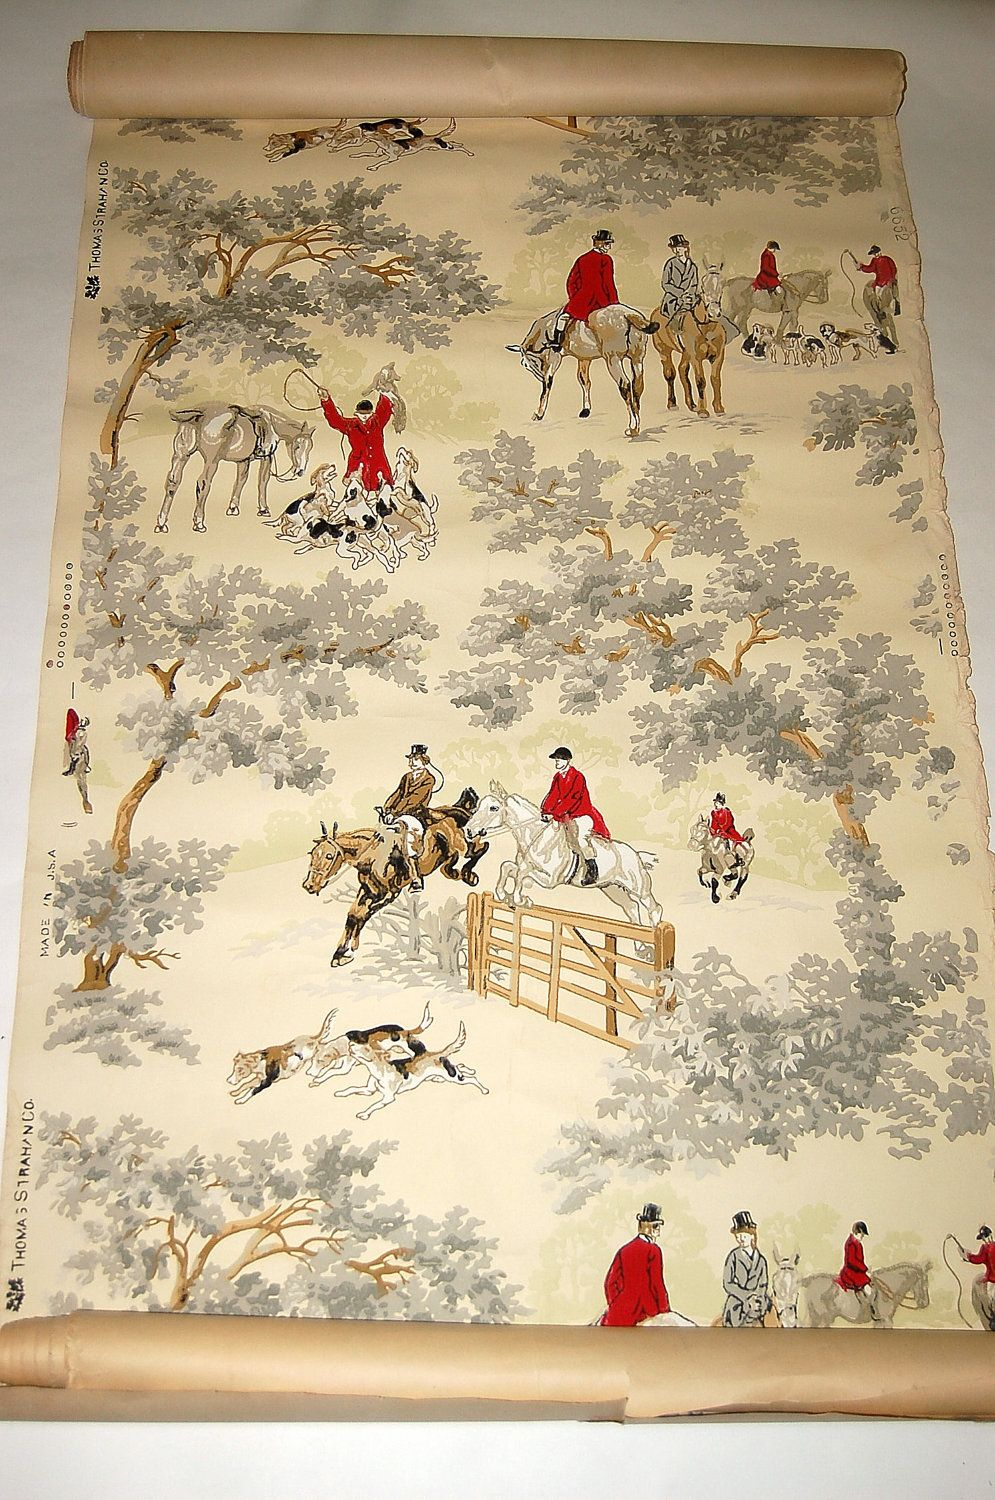 Vintage equestrian wallpaper from honeybeepollen. Let's